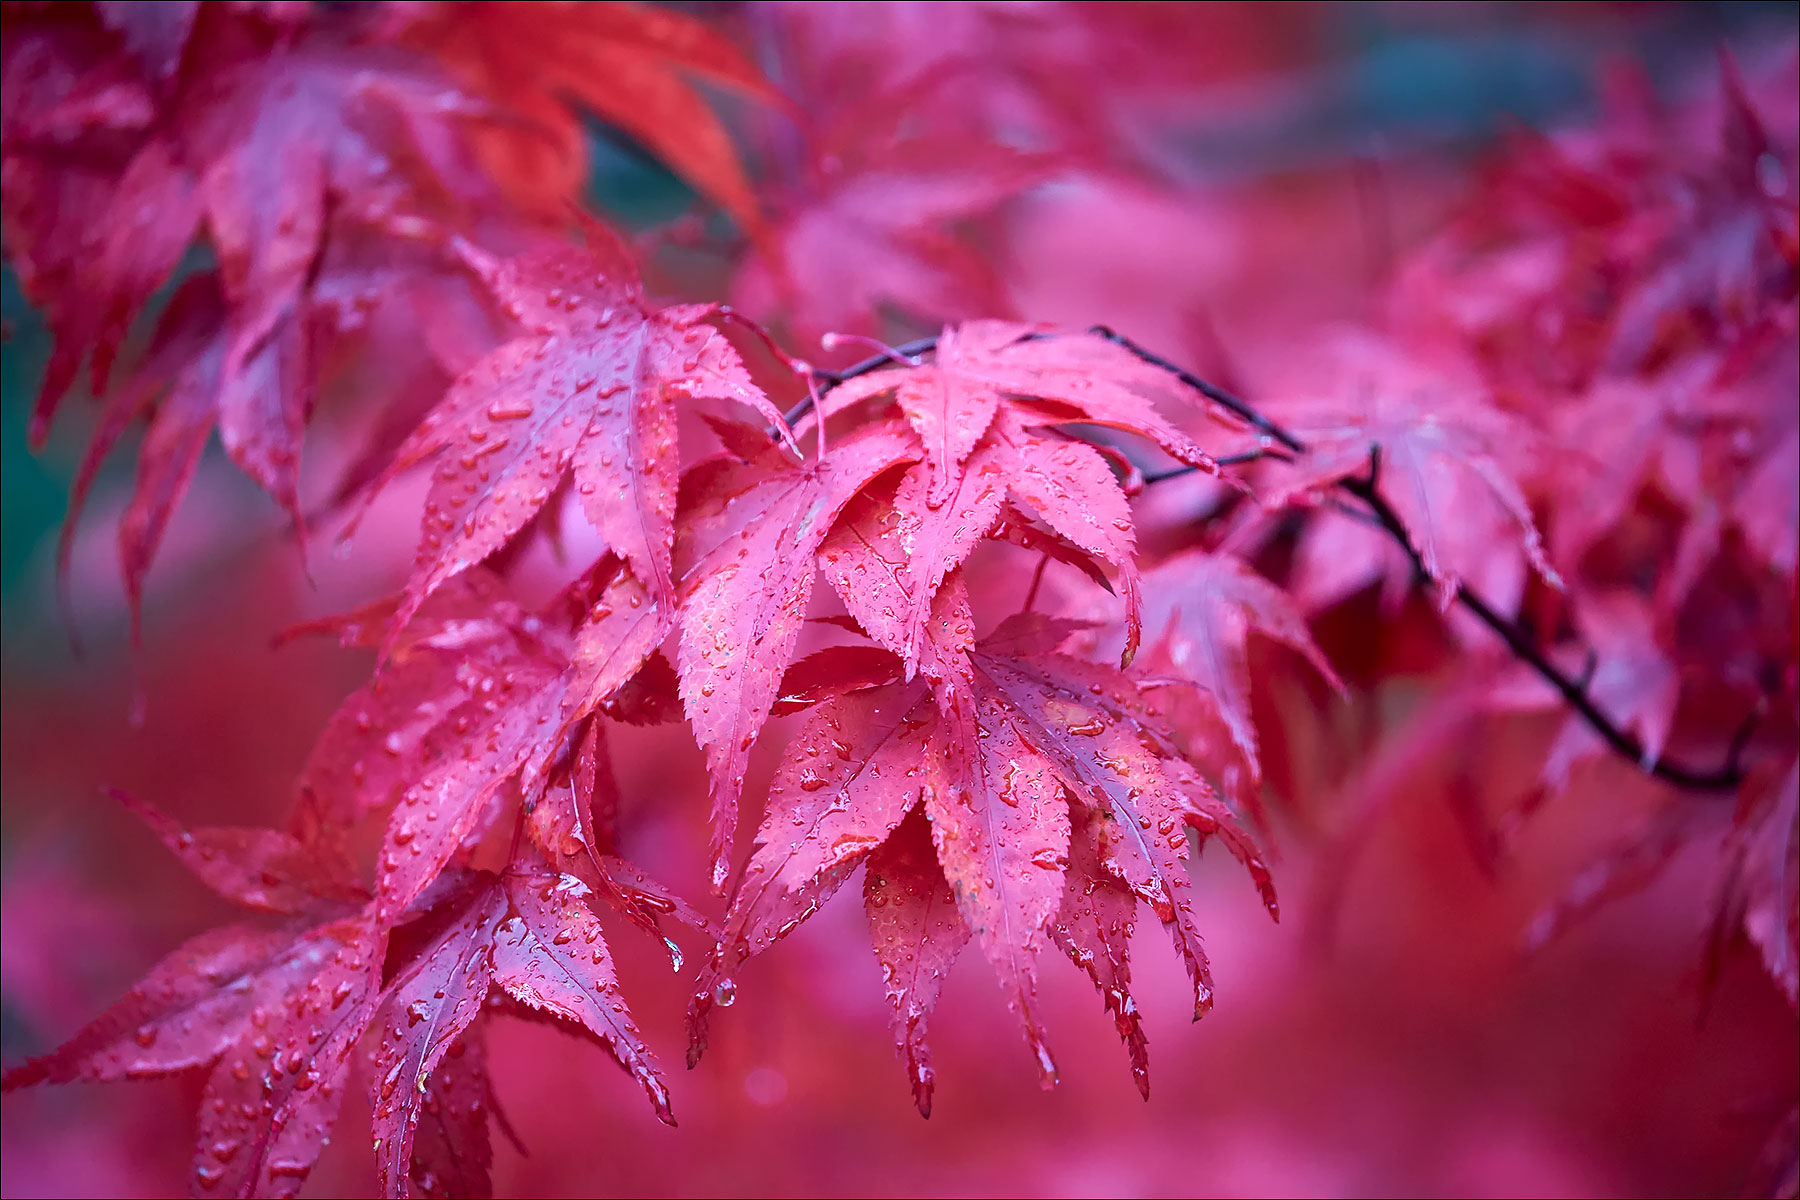 Red Maple Leaves in the Rain ©johncameron.ca